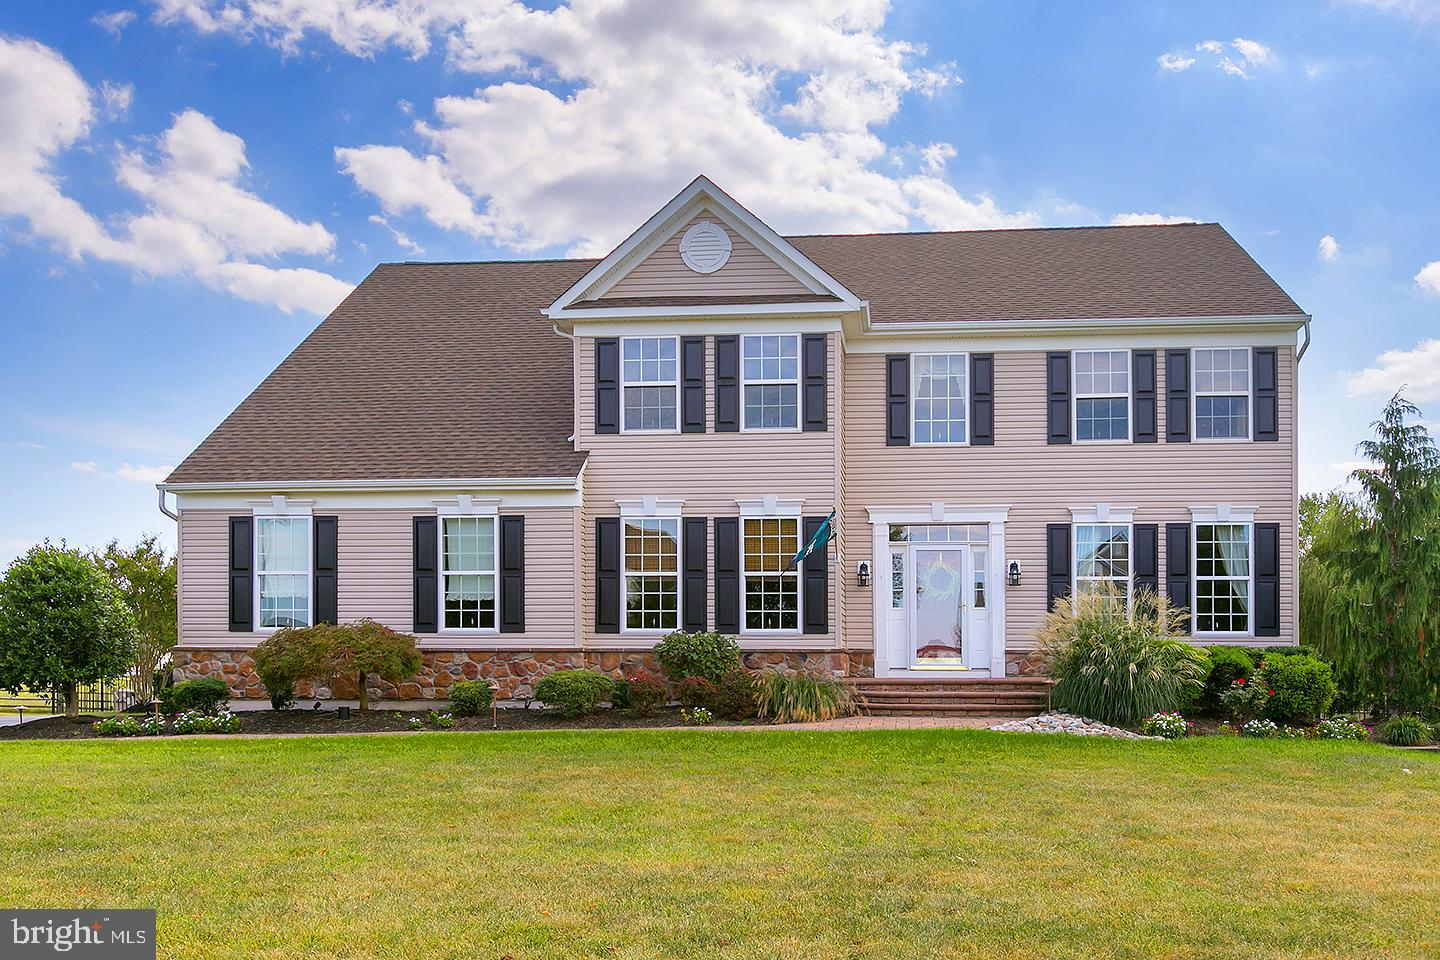 731 FARMHOUSE ROAD, MICKLETON, NJ 08056